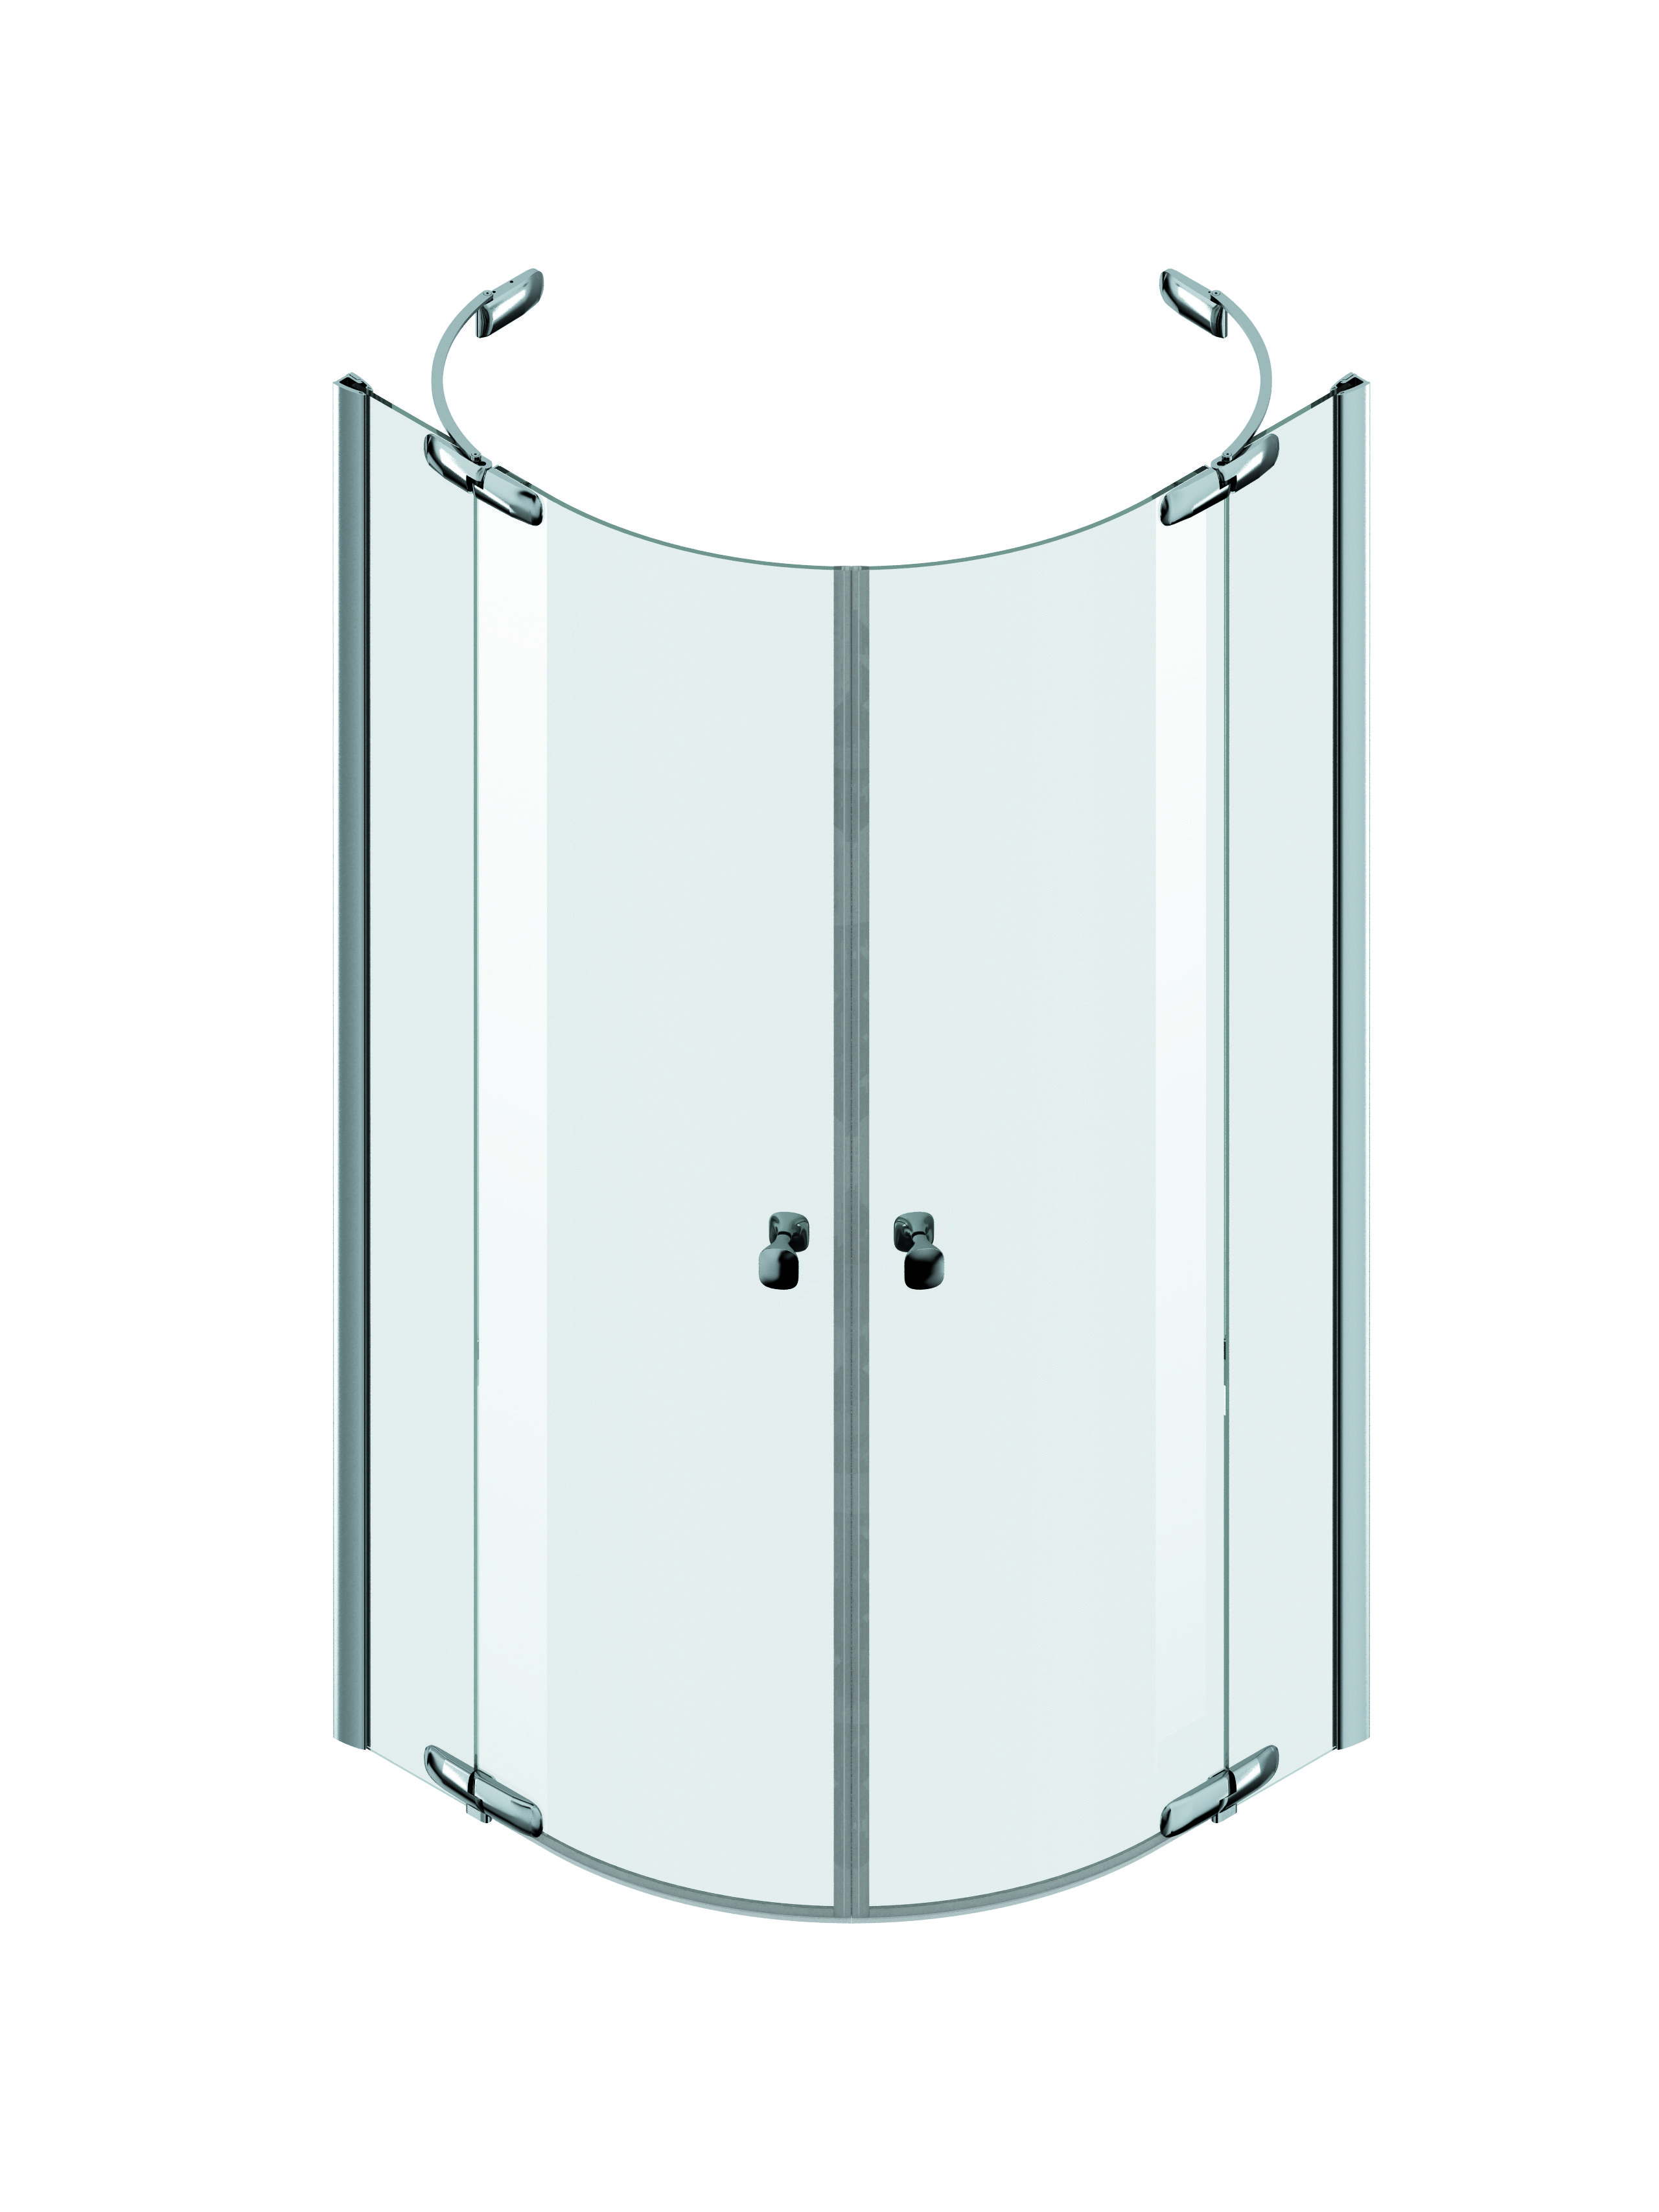 W30G-D90R2-200-C Shower enclosure, swing doors